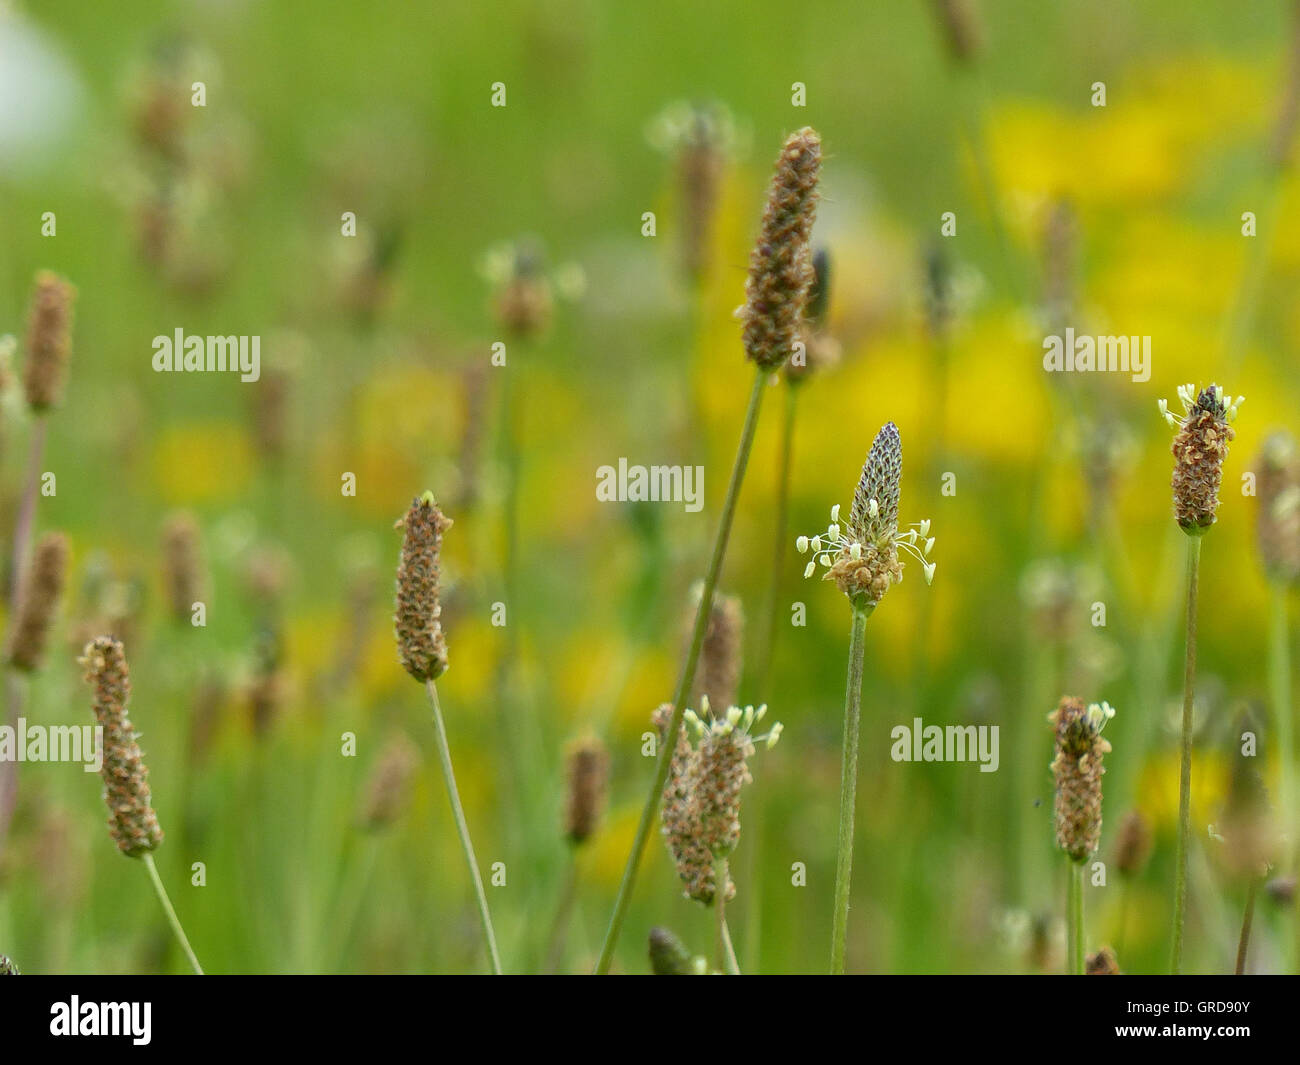 Fading Grasses On A Meadow - Stock Image